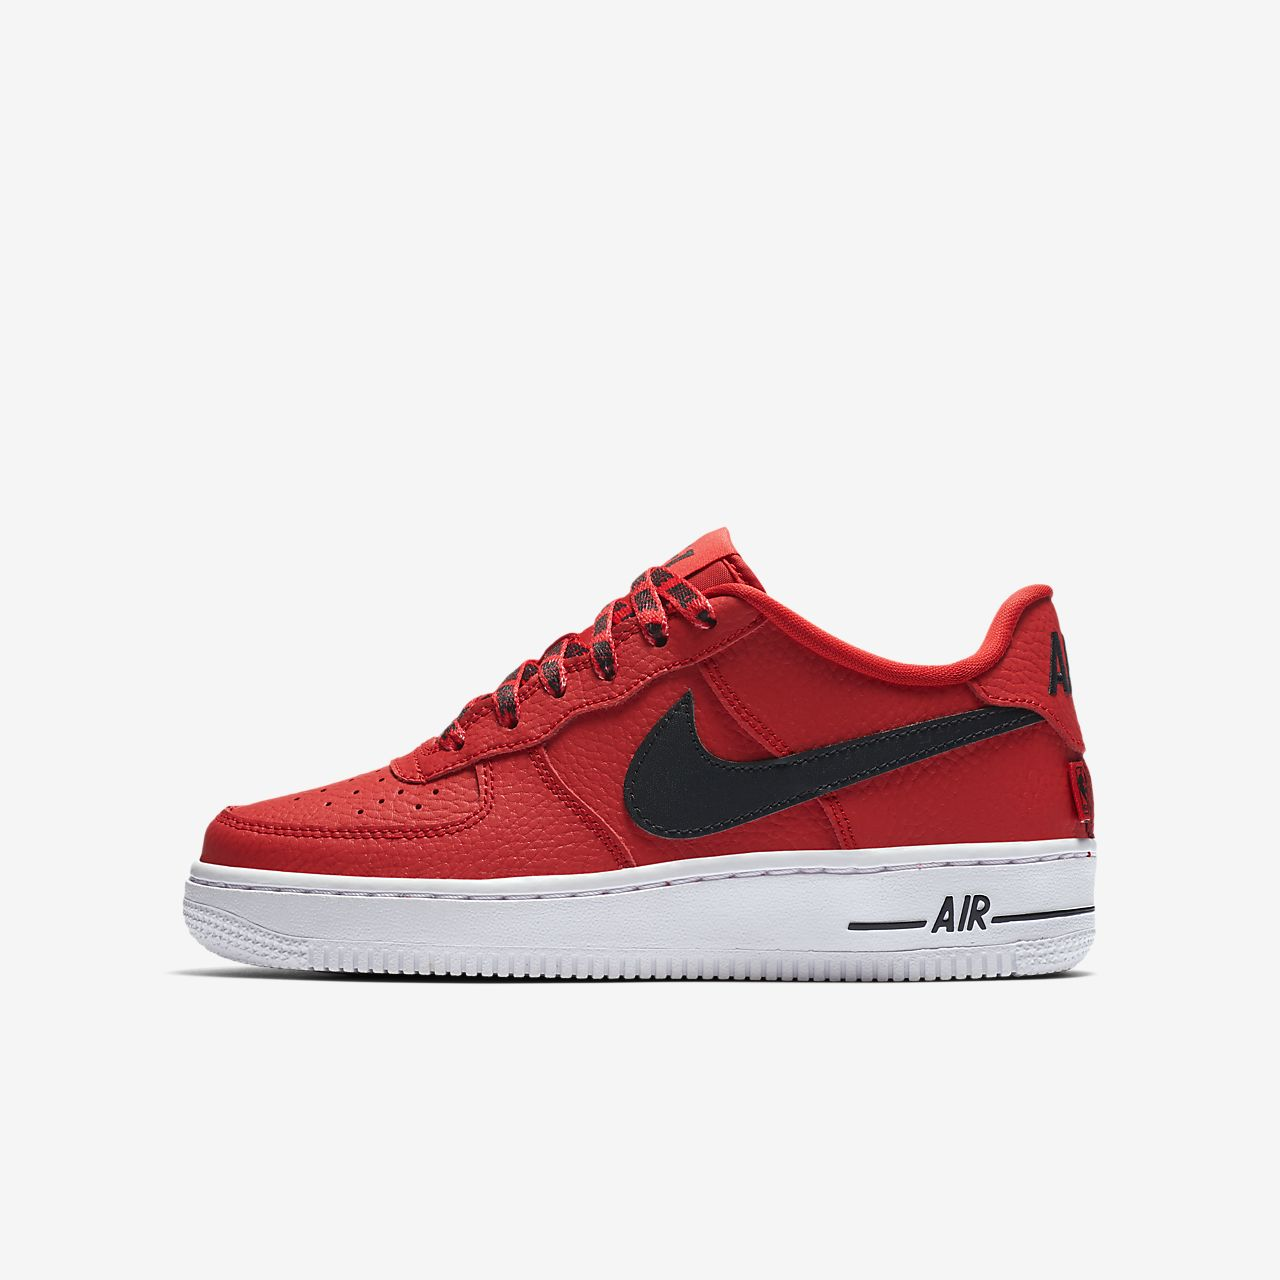 low cost 0b38c 6afdc ... Nike Air Force 1 Low 07 NBA. Mens Shoe. 100.